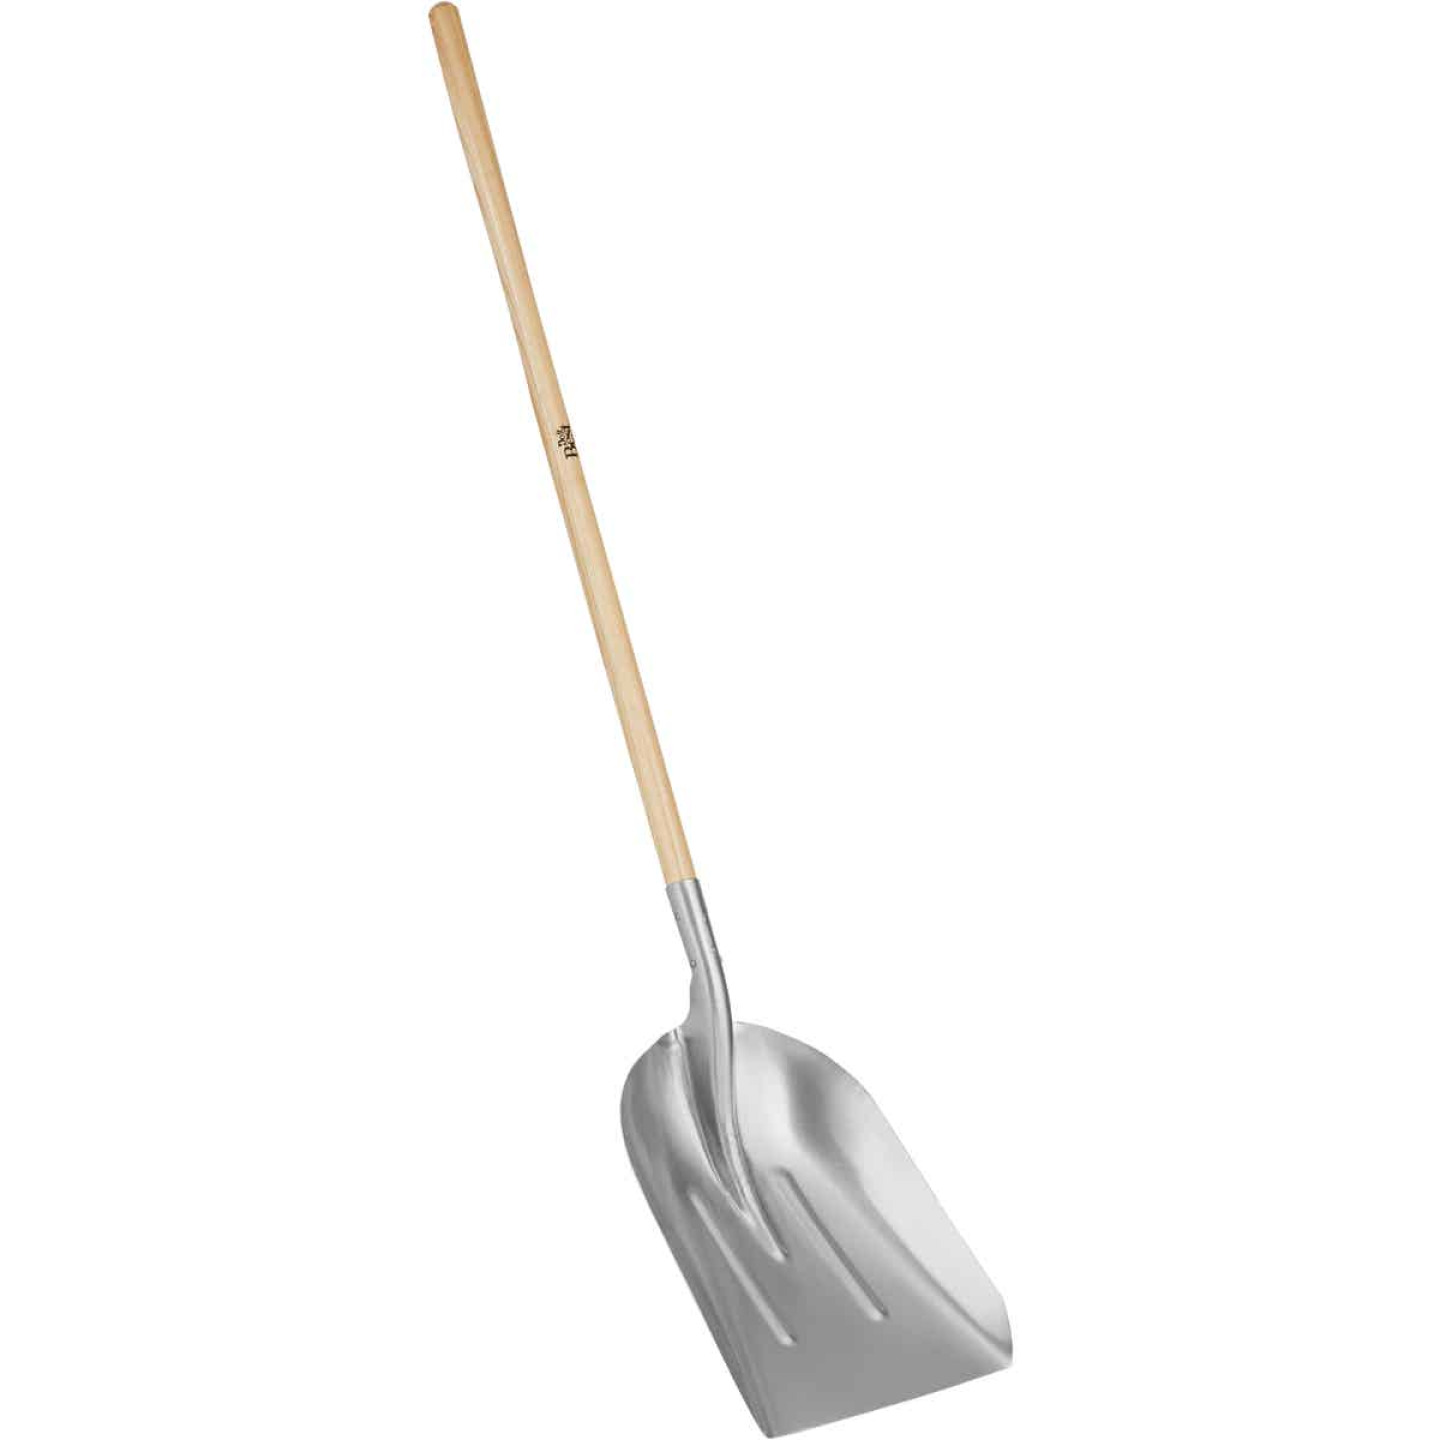 Do it Best 45 In. Wood Handle Aluminum Scoop Shovel Image 1